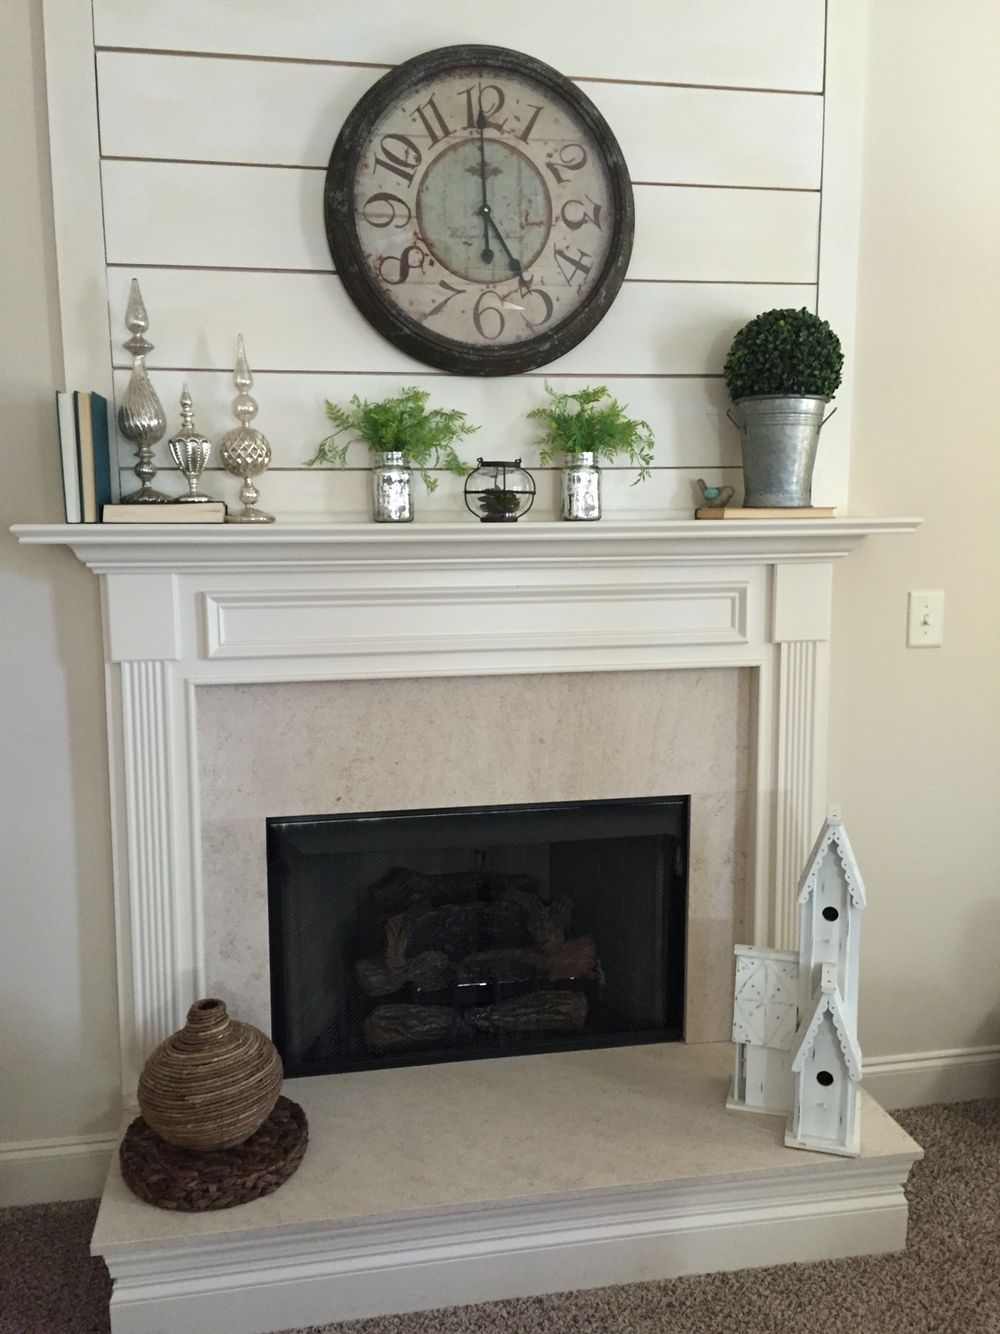 33 Modern And Traditional Corner Fireplace Ideas Remodel And Decor Corner Fireplace Decor Corner Fireplace Layout Fireplace Built Ins